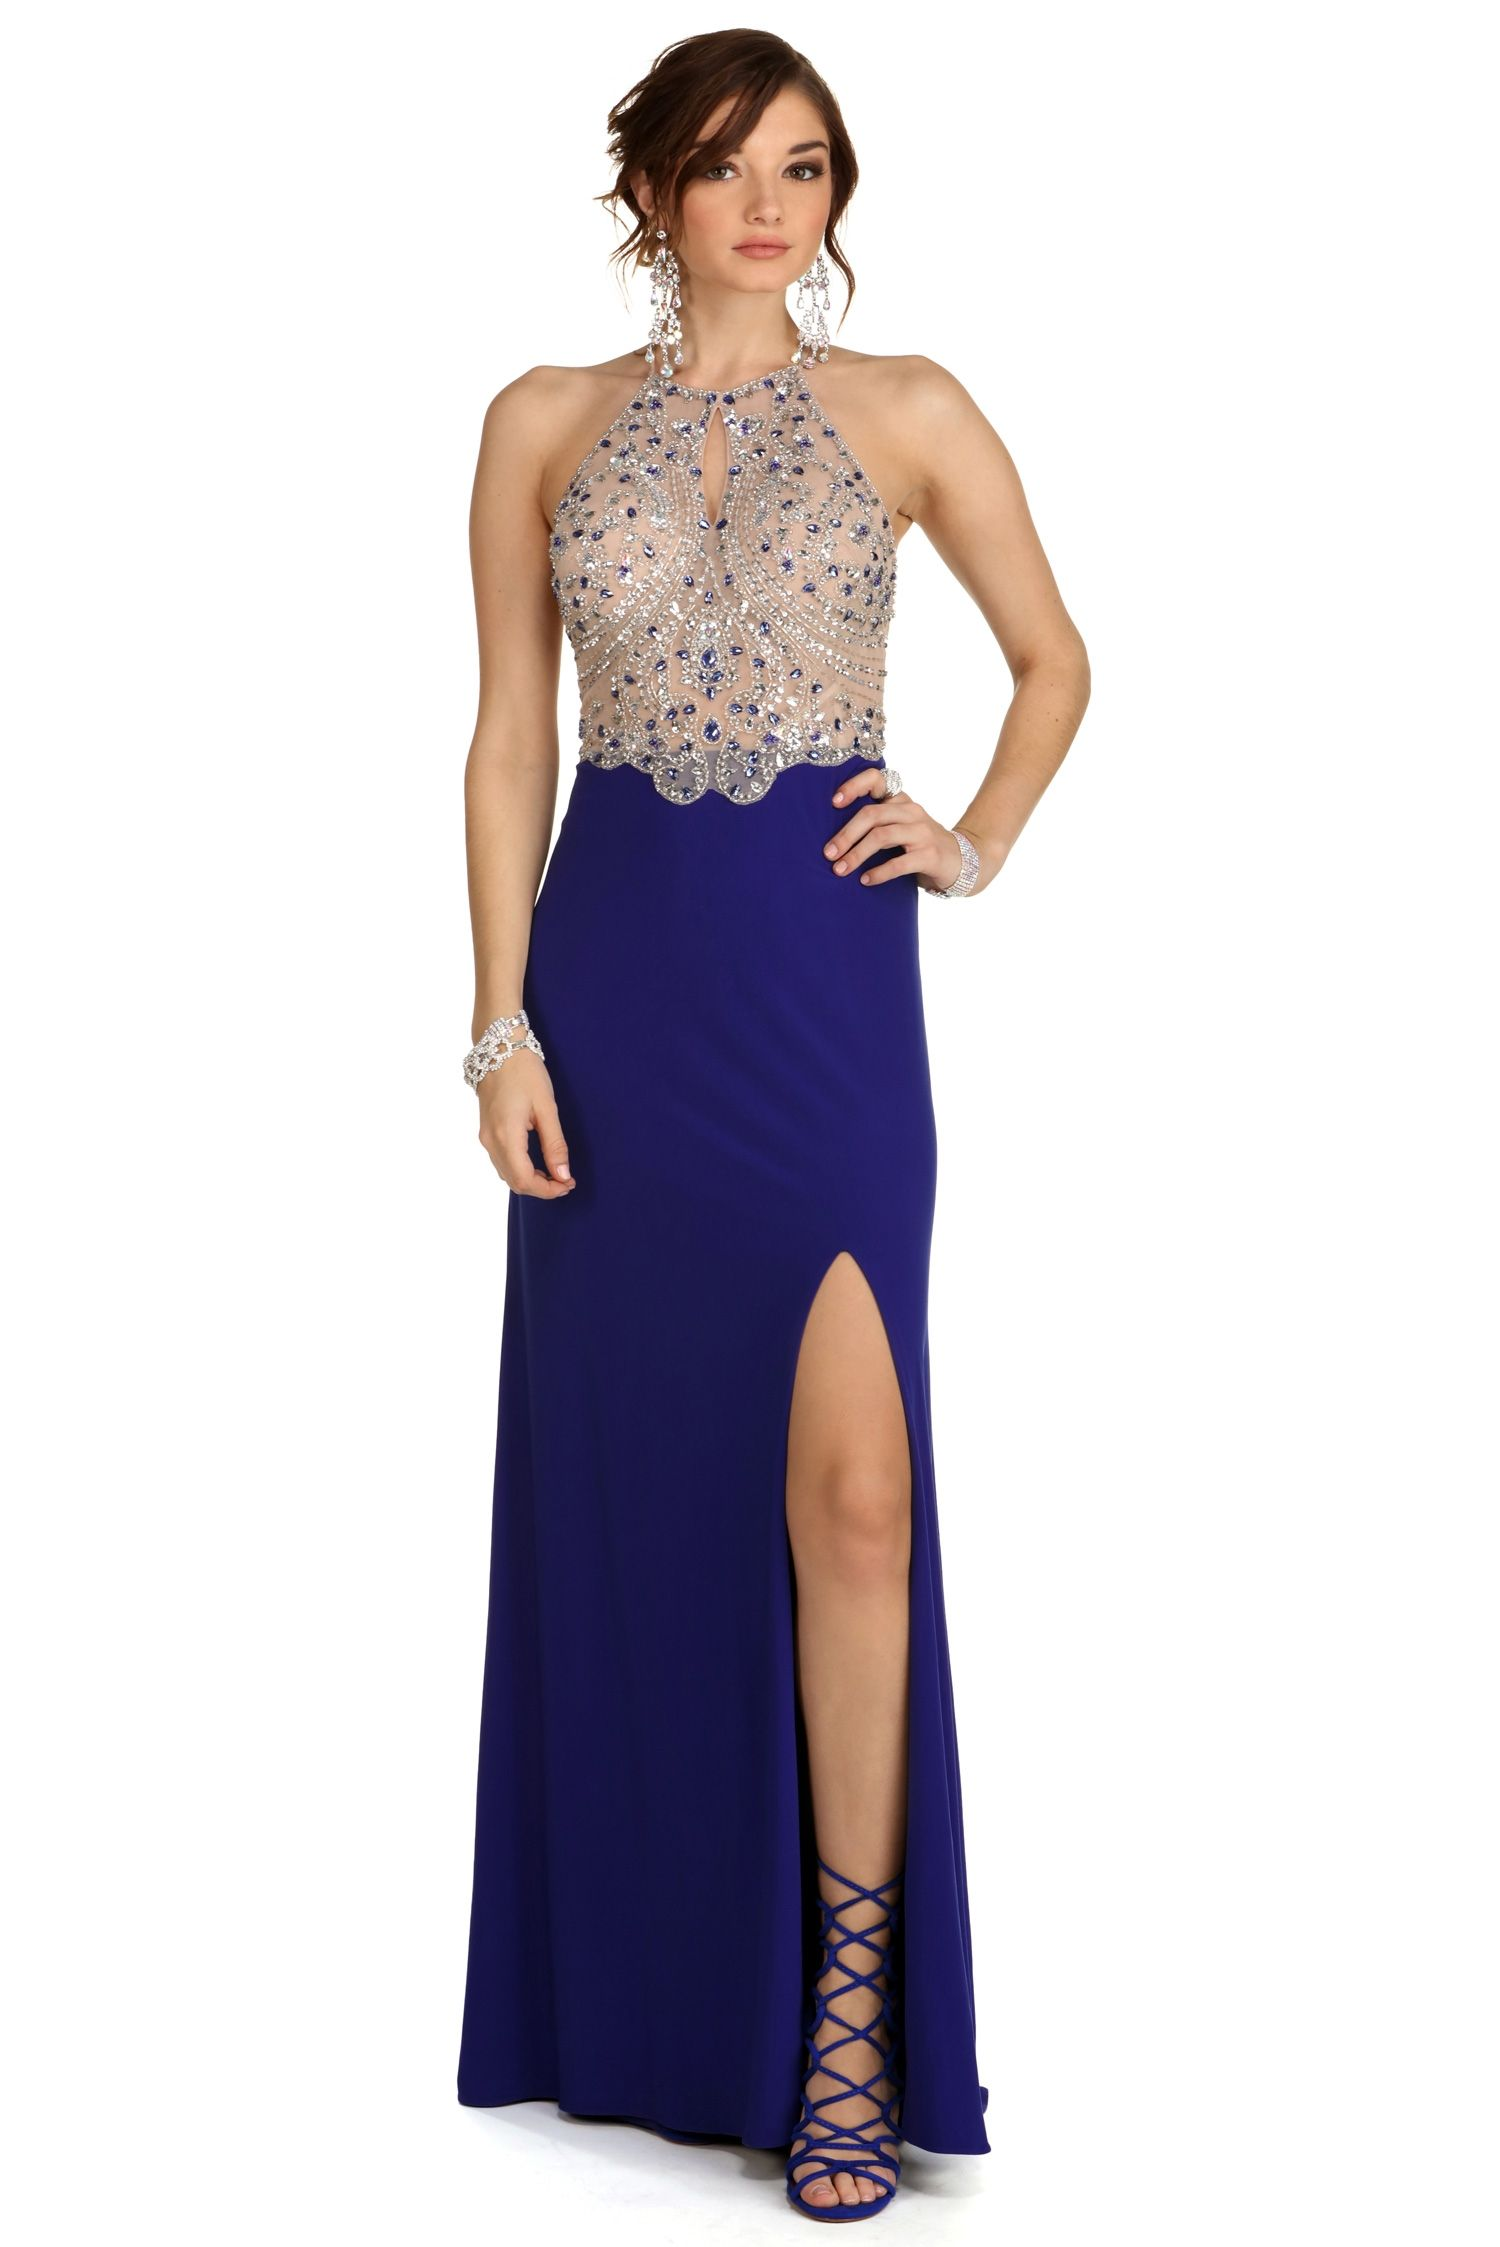 Blake Blue Jeweled Prom Dress | Blues, Products and Dresses